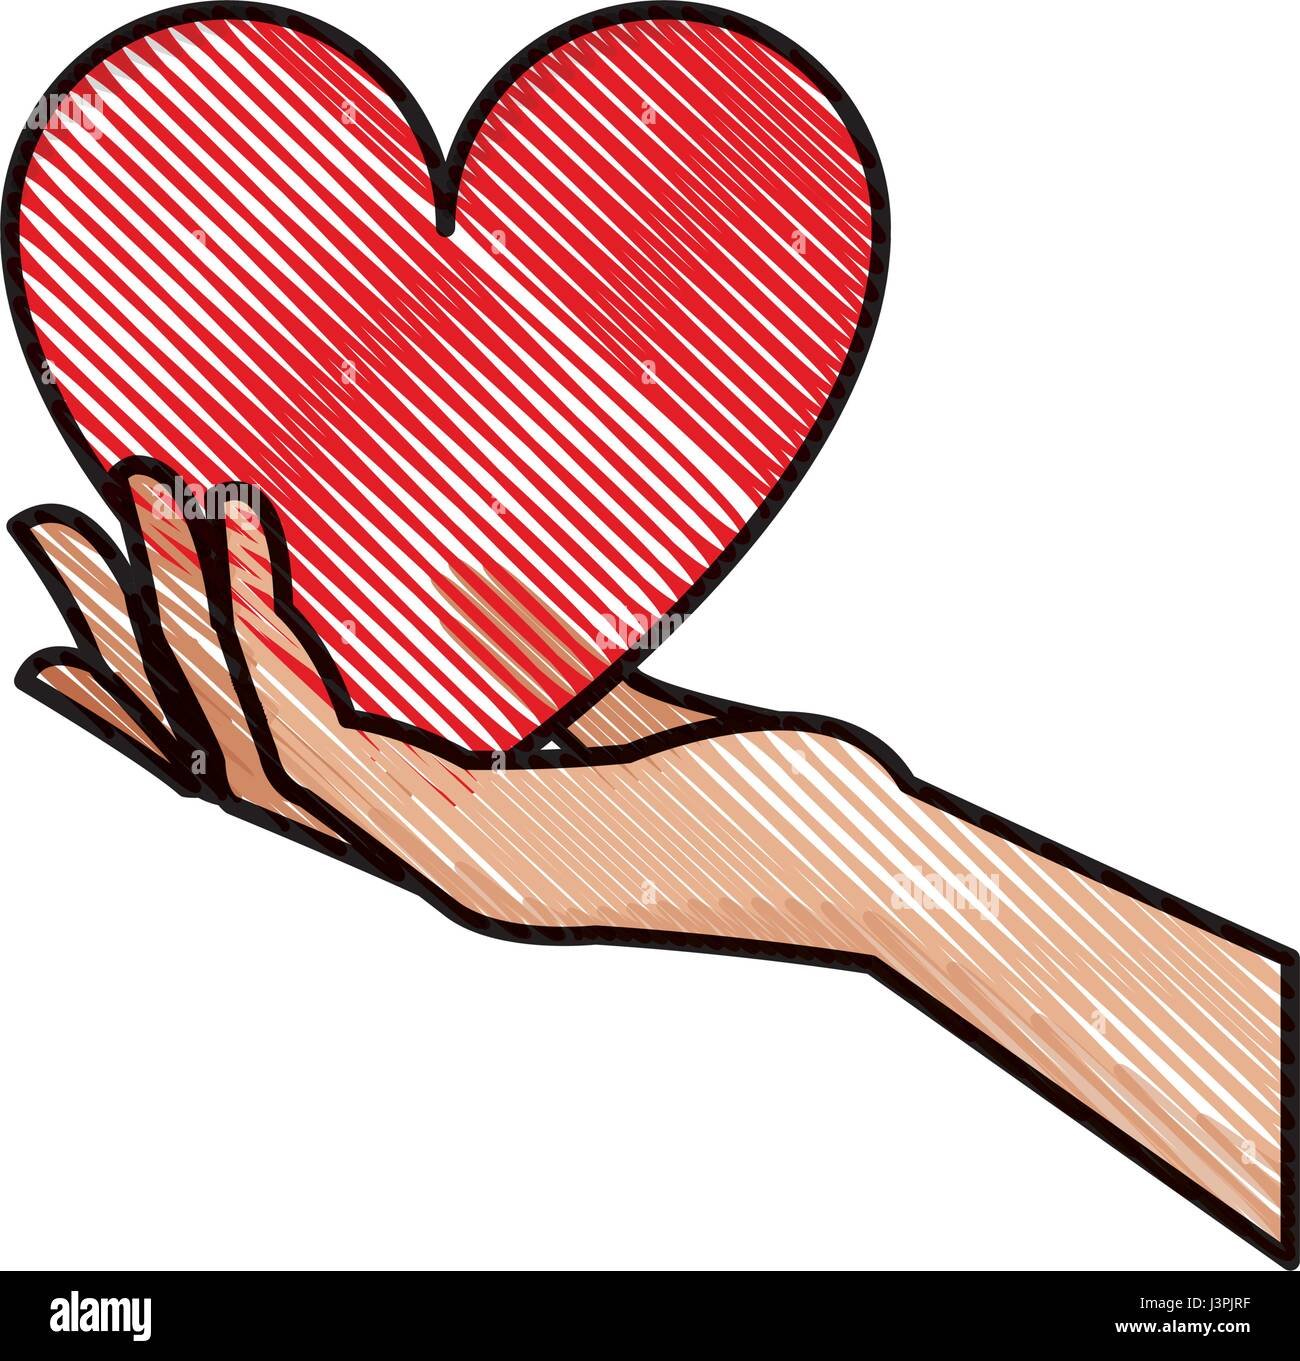 Drawing hand holding heart blood donation symbol stock vector art drawing hand holding heart blood donation symbol buycottarizona